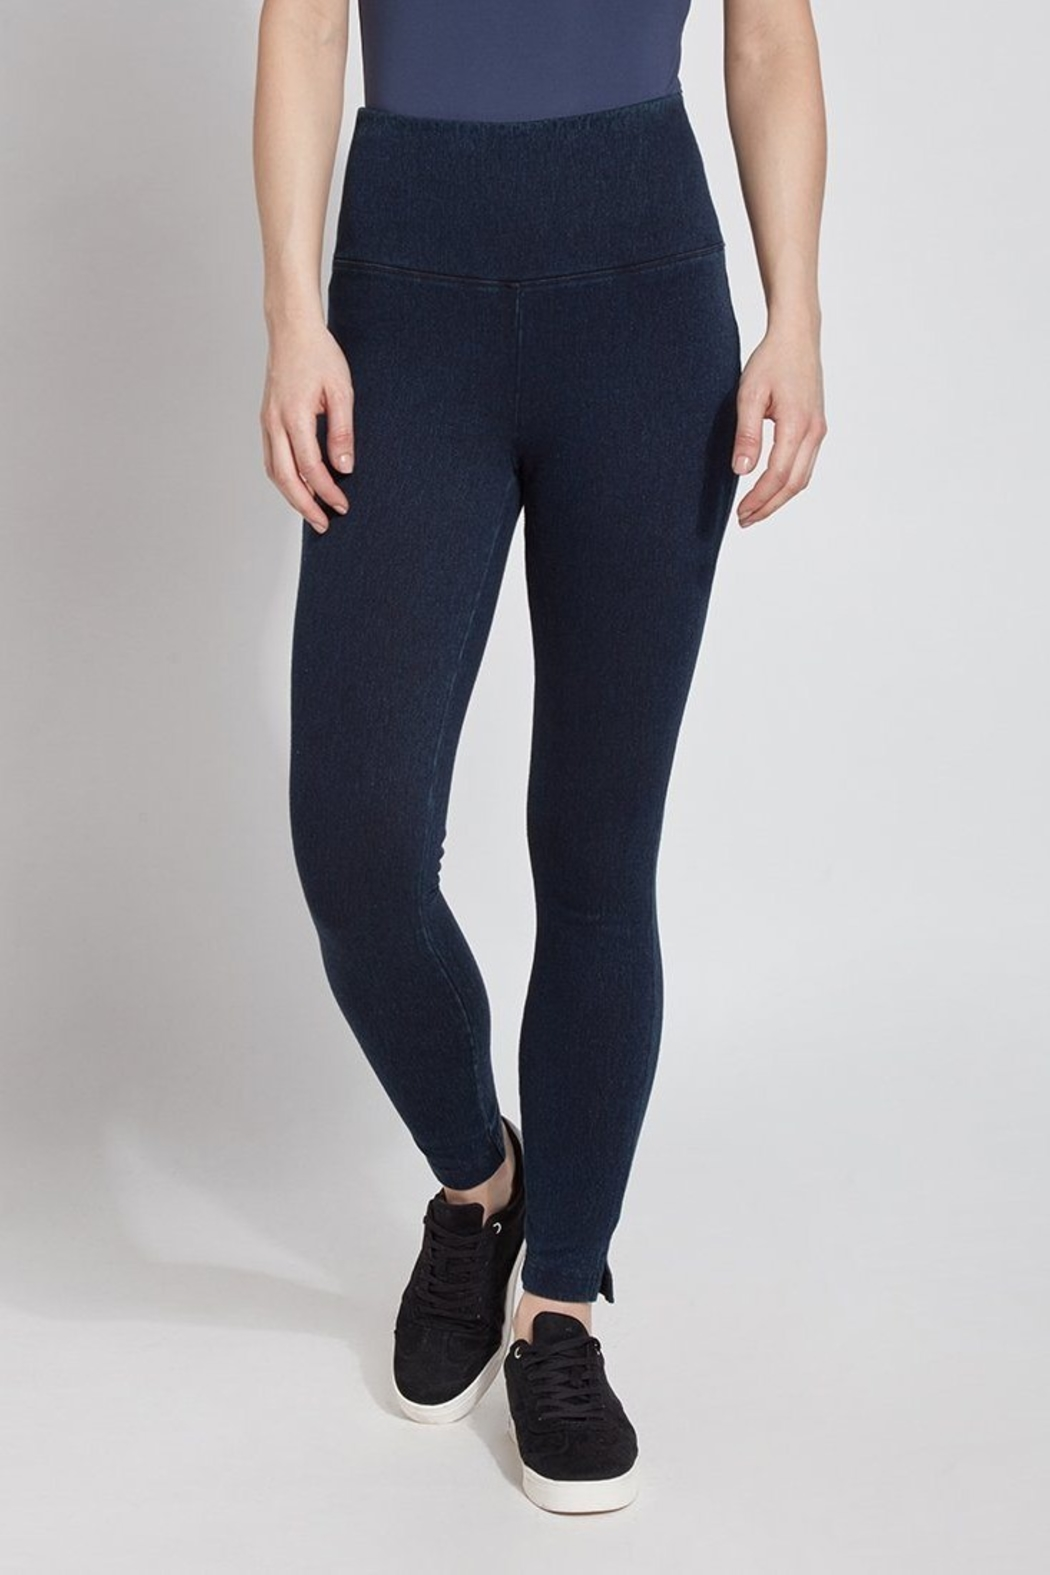 Lysse Perfect Denim Leggins - Front Cropped Image